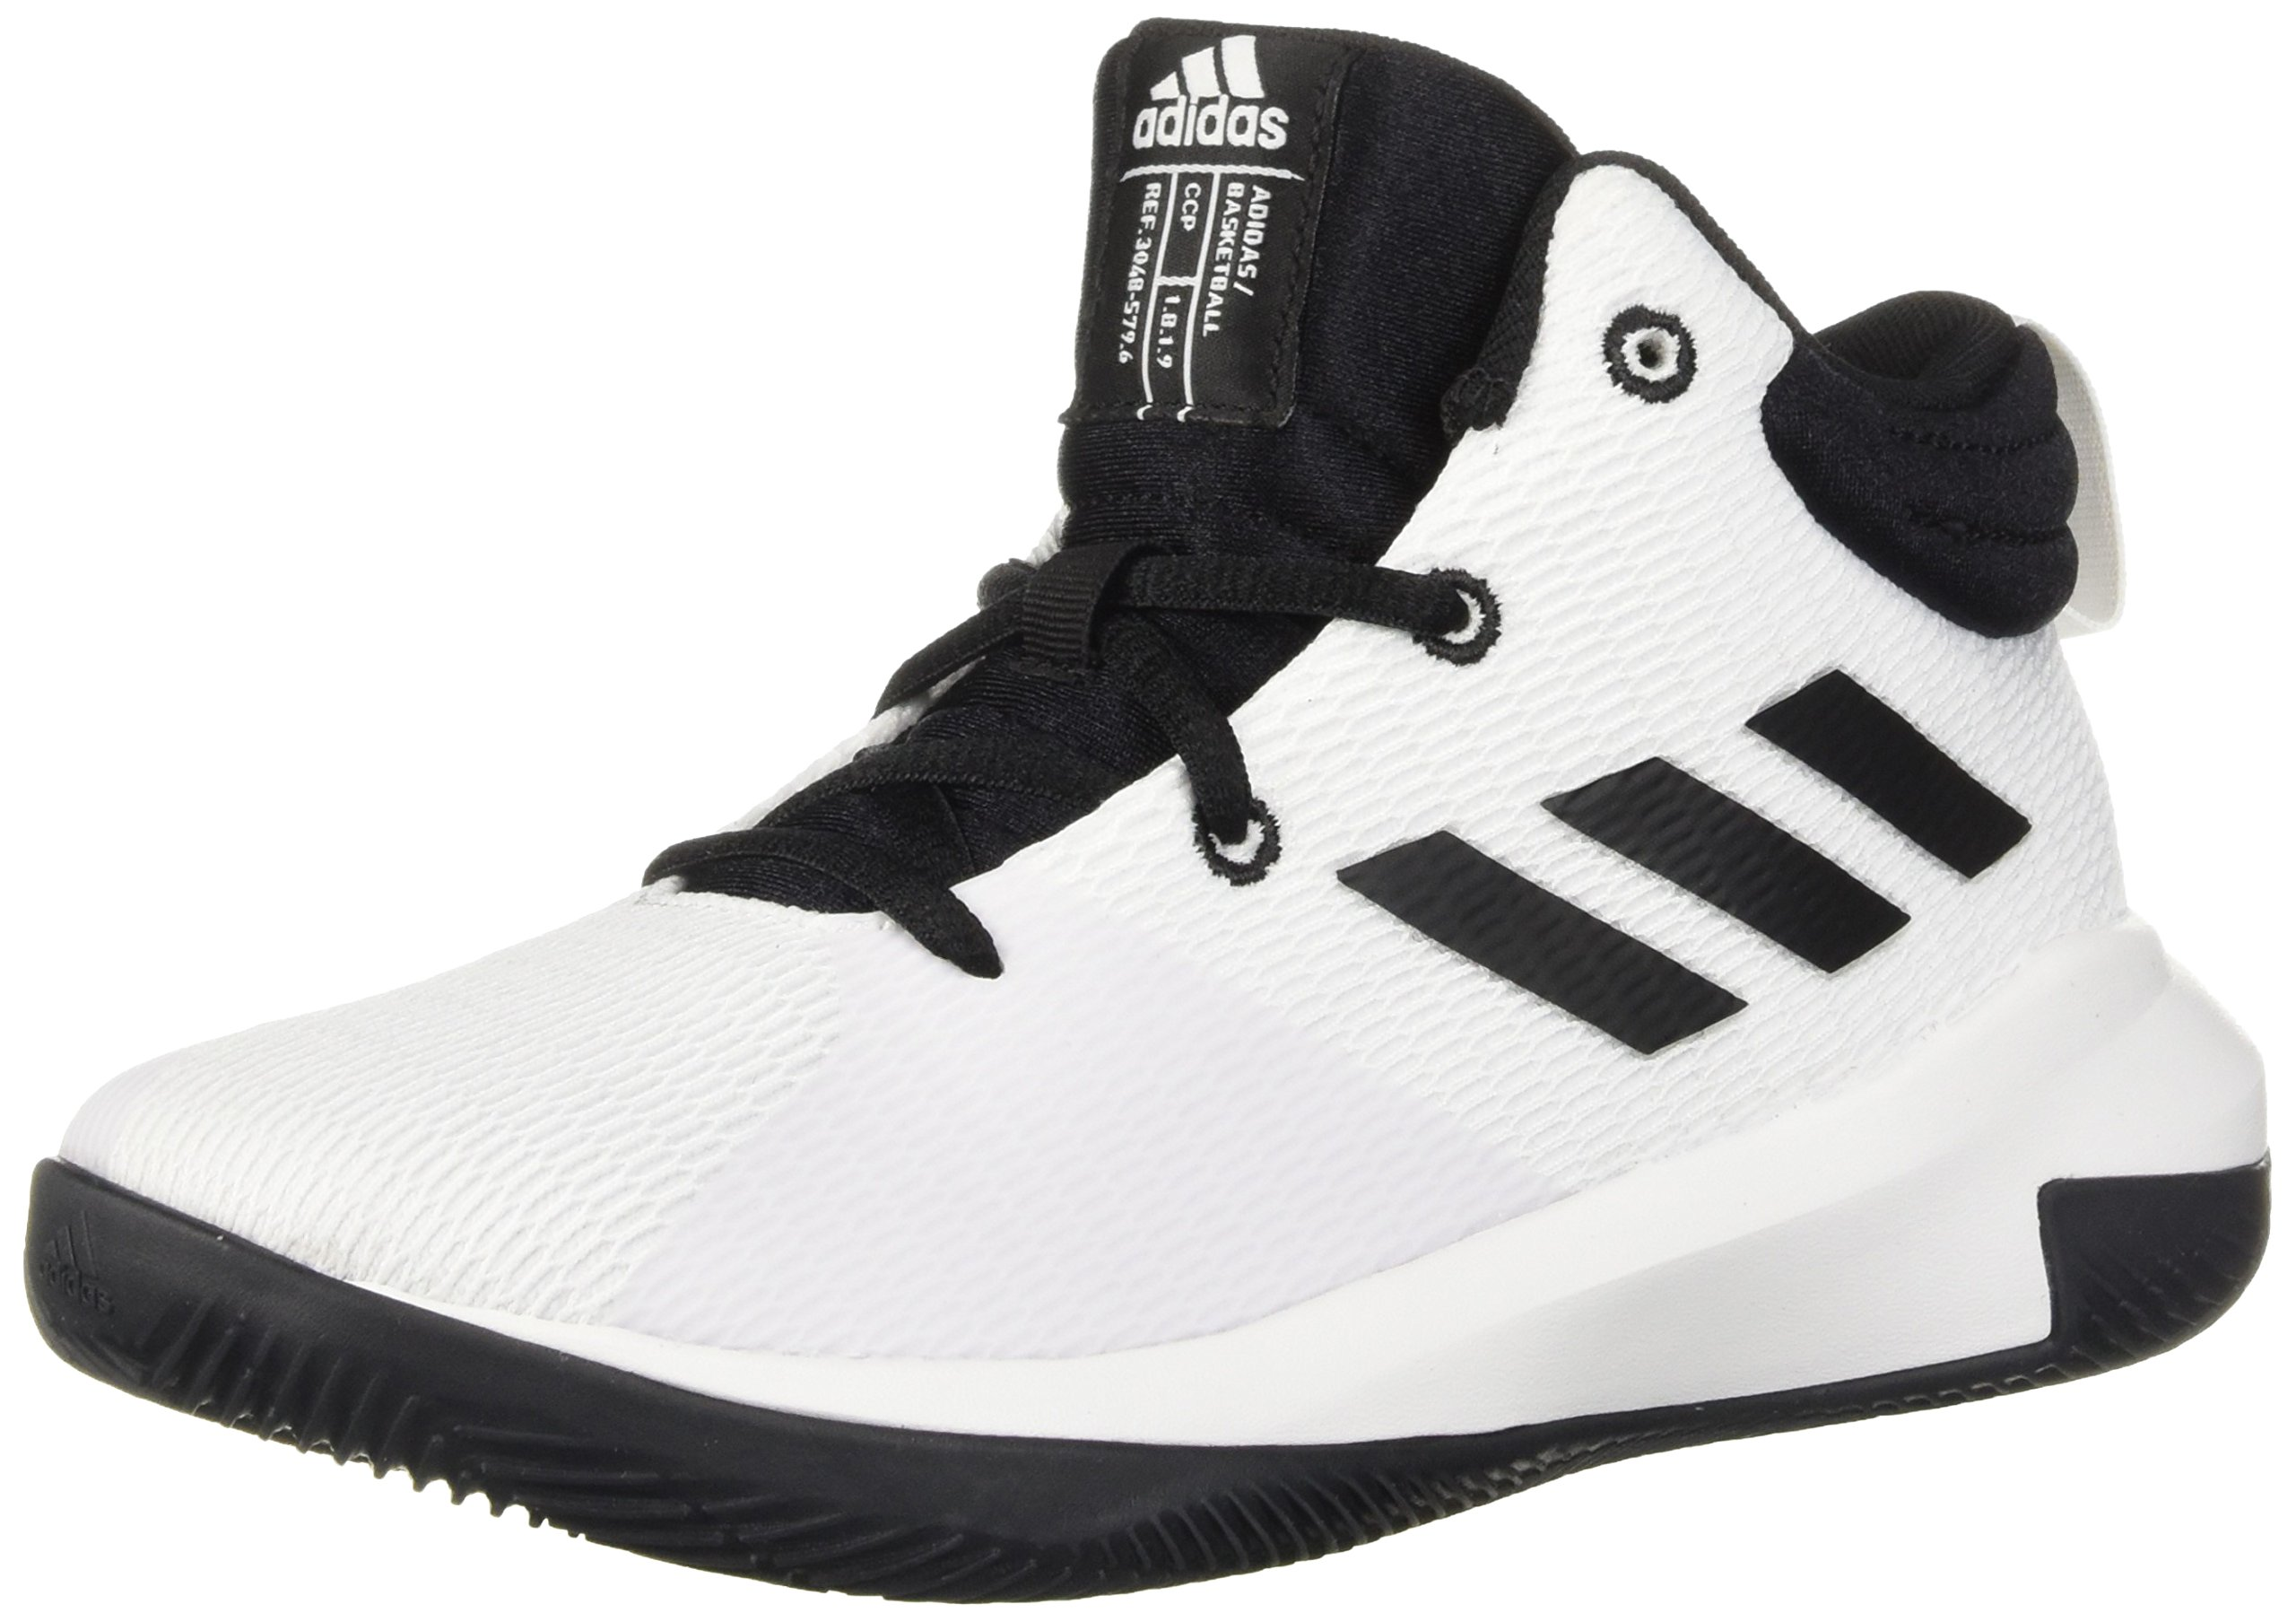 adidas Unisex Pro Elevate 2018 Basketball Shoe, Black/White, 2.5 M US Little Kid